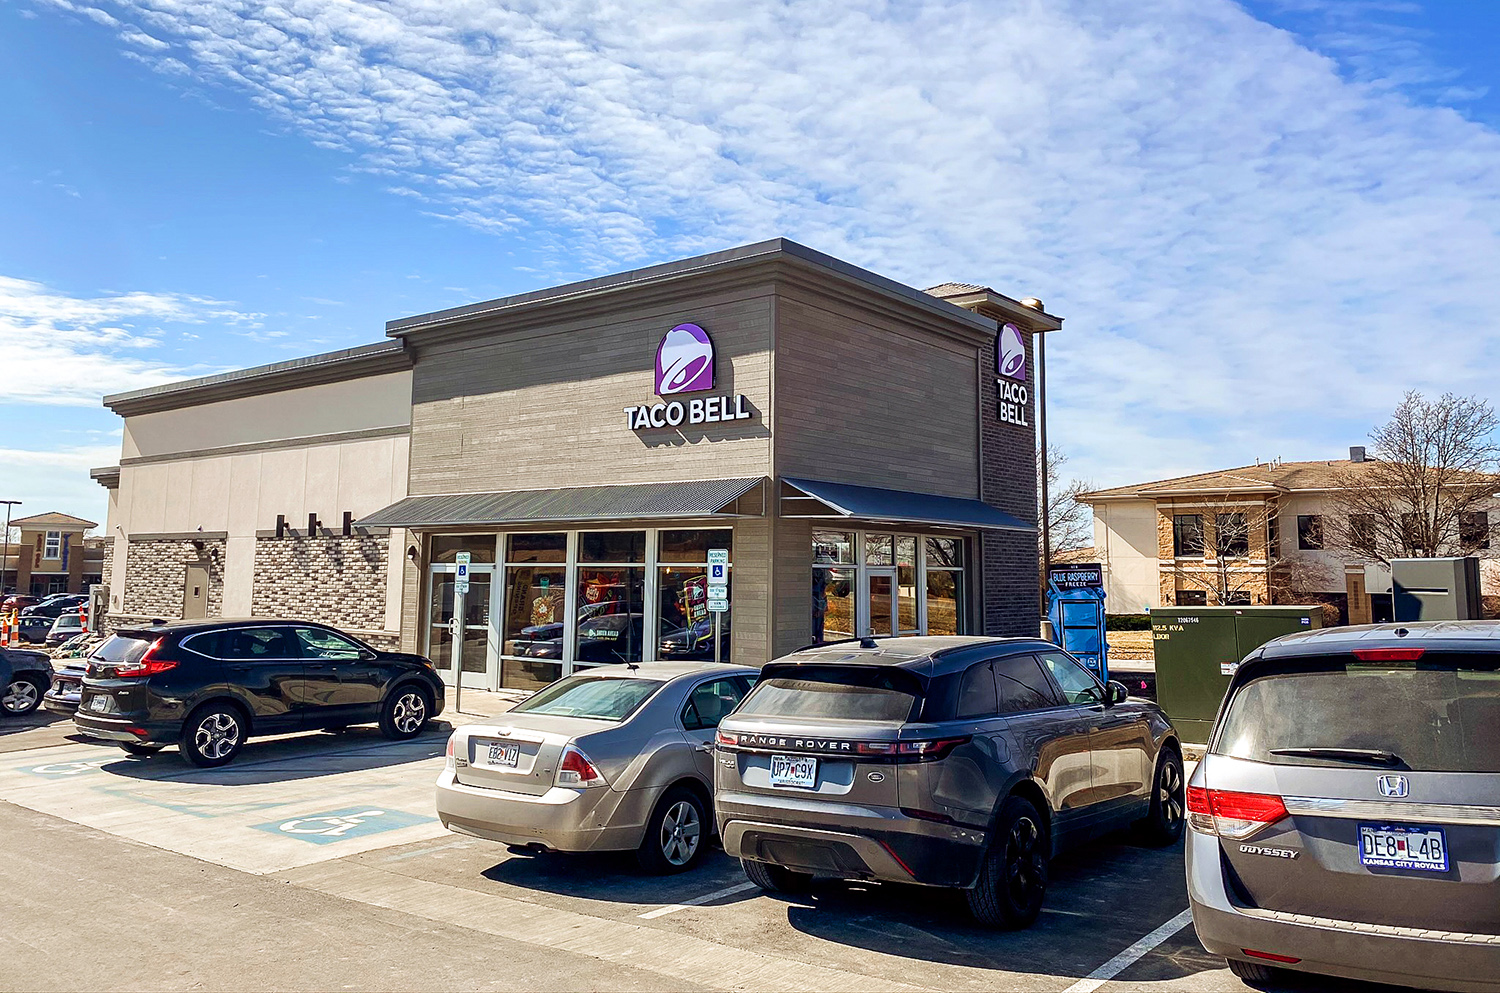 Hanley Investment Group Arranges Sale of New Construction, Two-Tenant Taco Bell and Scooter's Coffee Drive-Thrus in Grocery-Anchored Shopping Center in Kansas City Metro for $3.3 Million